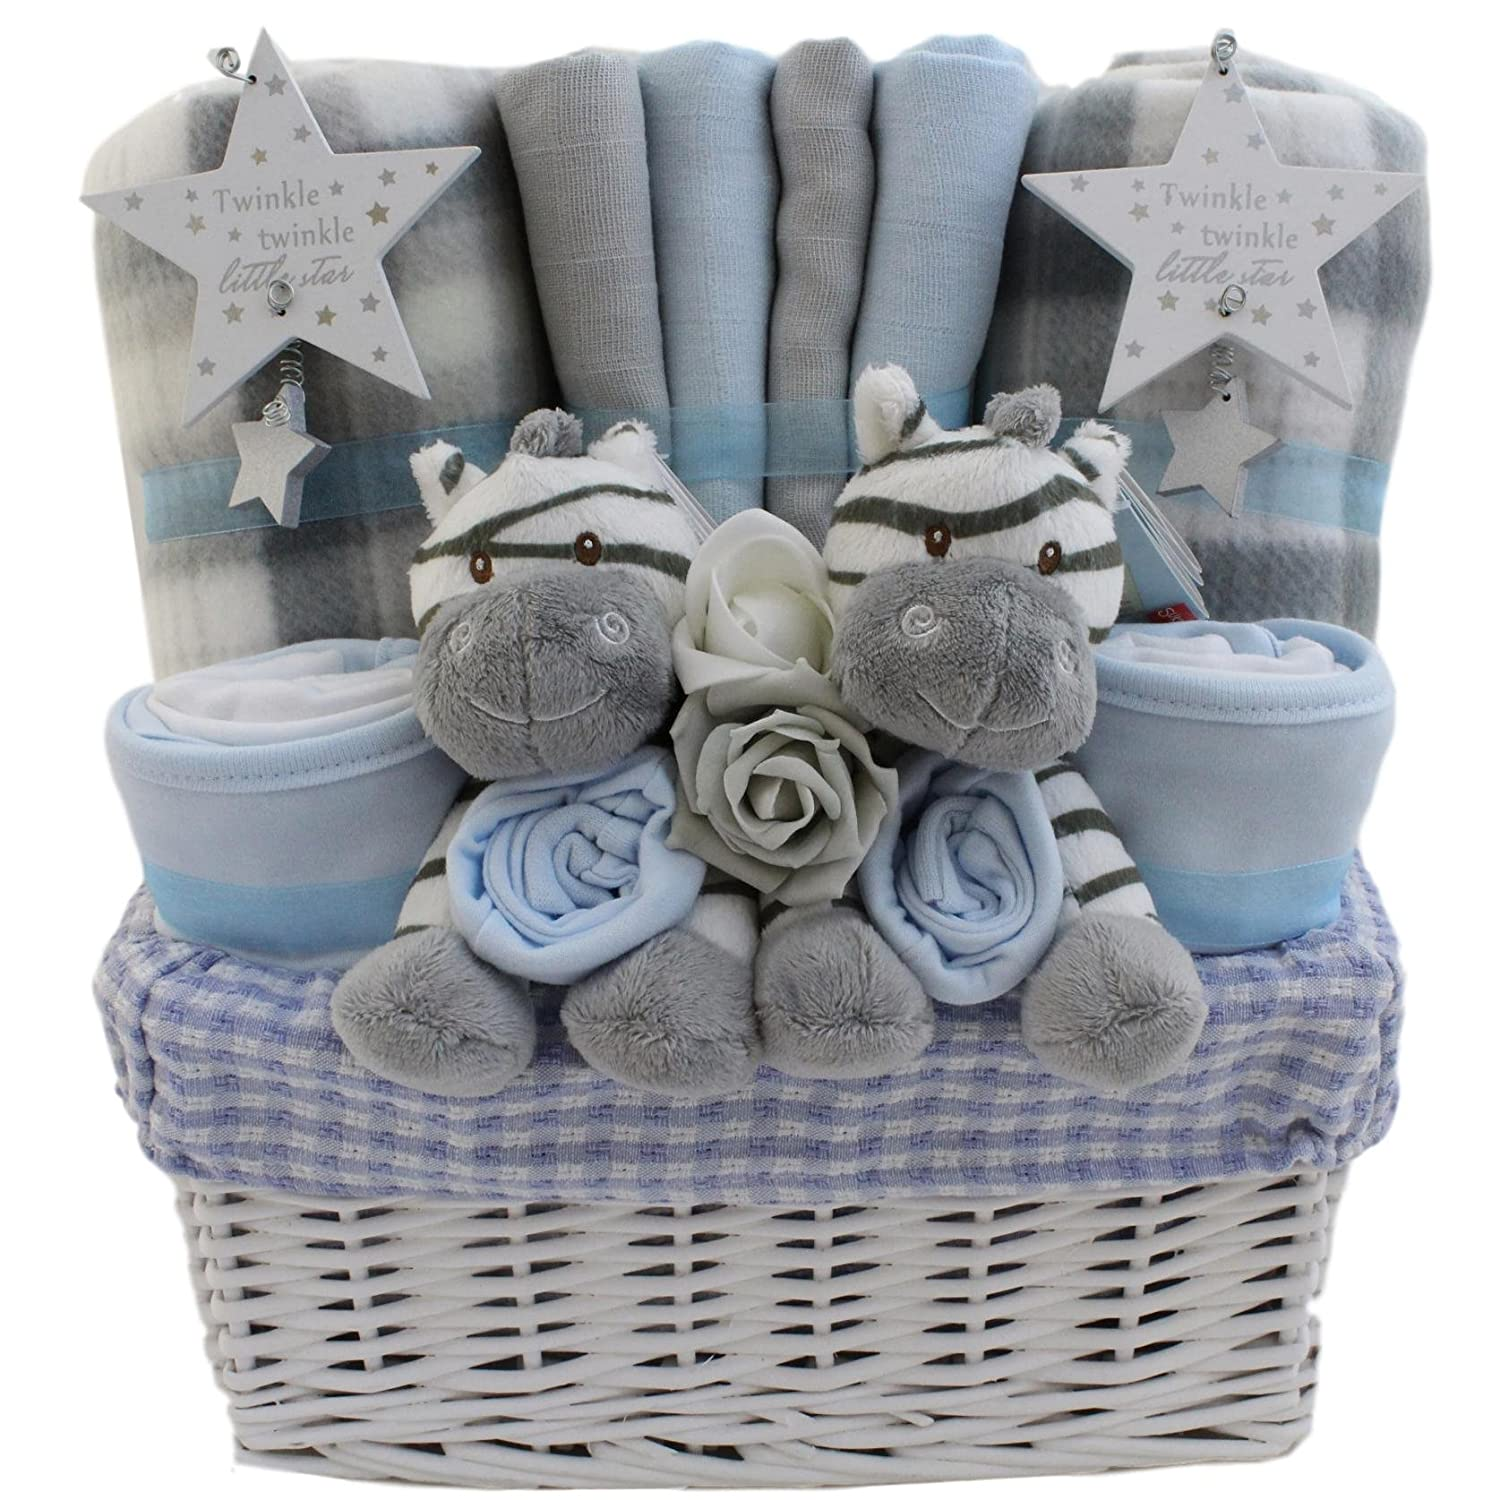 Baby boy twins gift basket baby twin boys gift hamper baby twin shower gift new baby gift for twin boys Unique Baby Gift Baskets